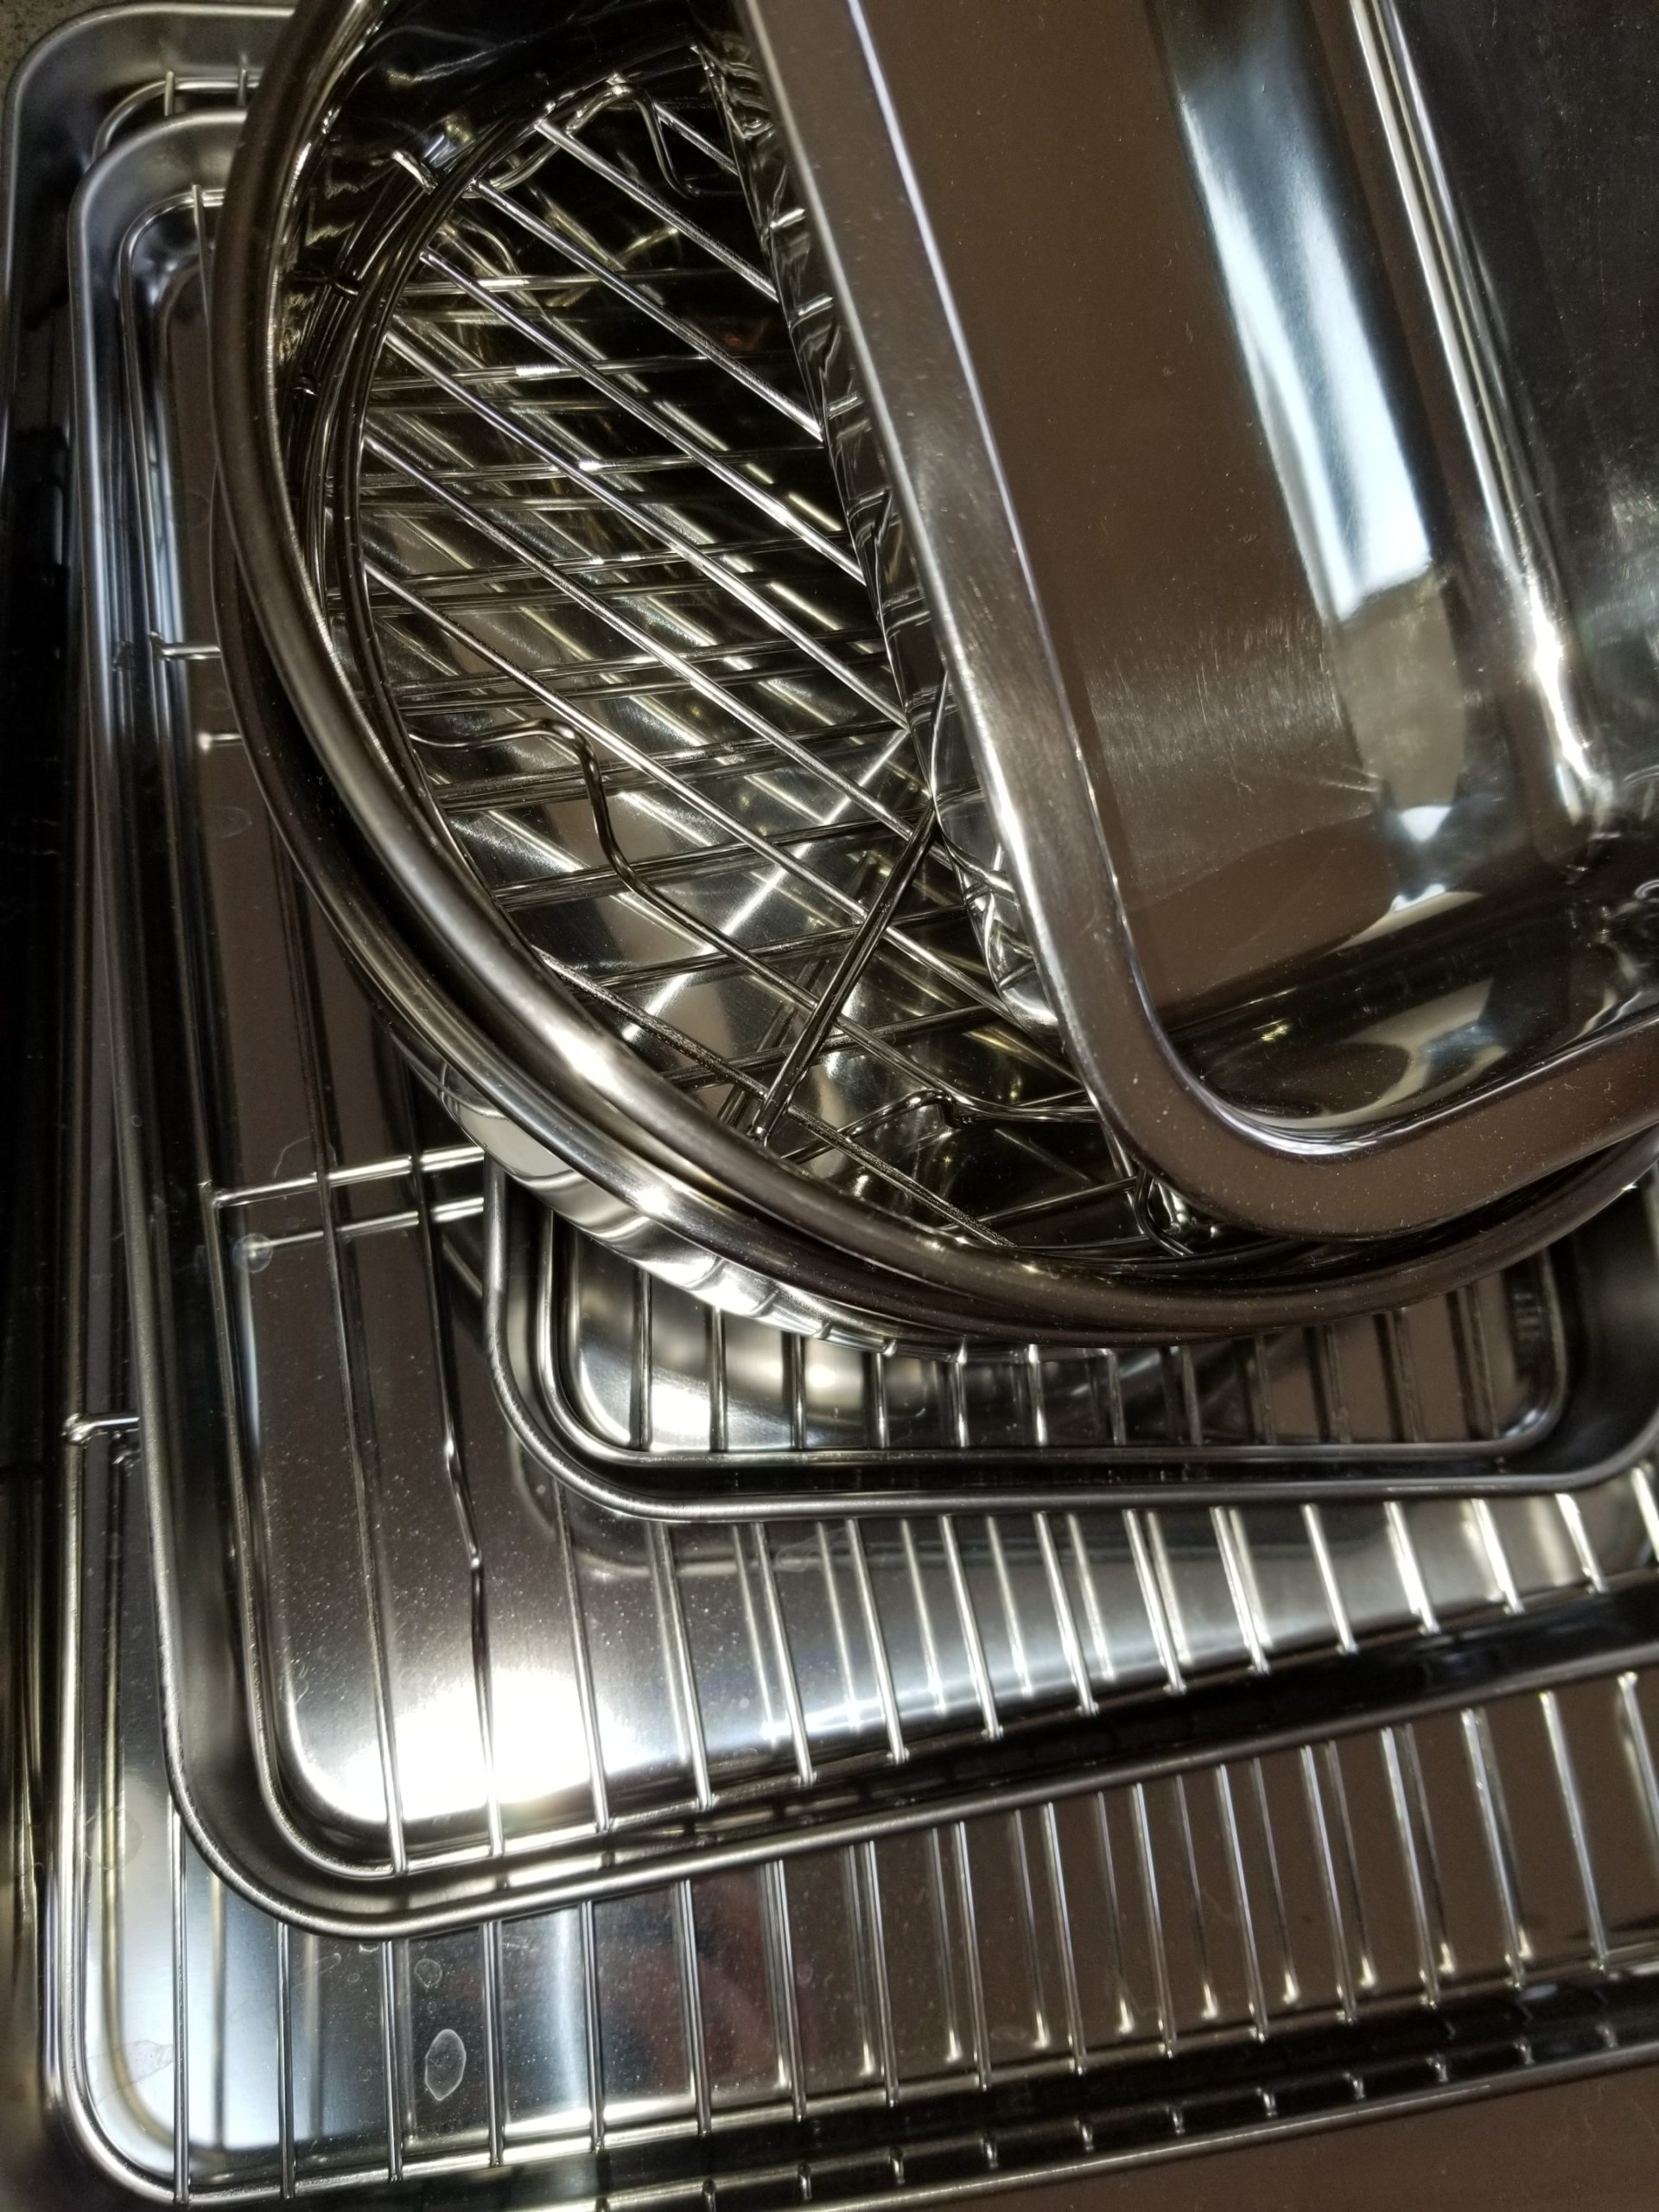 Stainless Steel Pans & Sheets